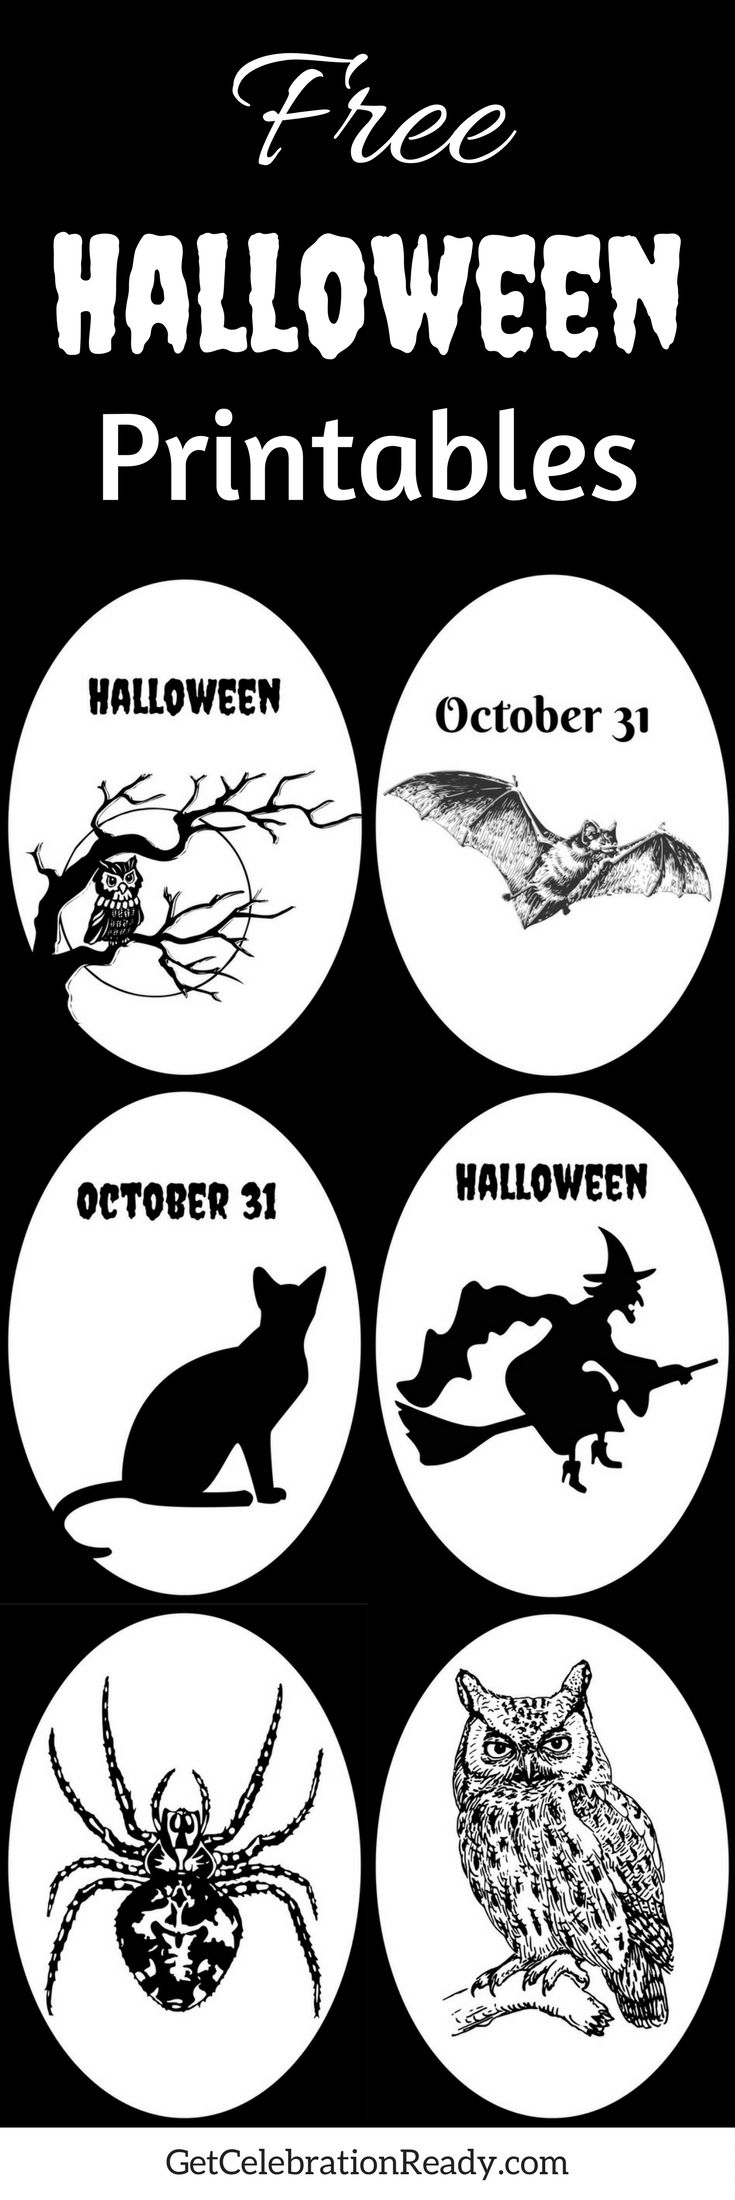 free halloween printables are great for easy diy halloween projects print them at home - Halloween Decoration Printables